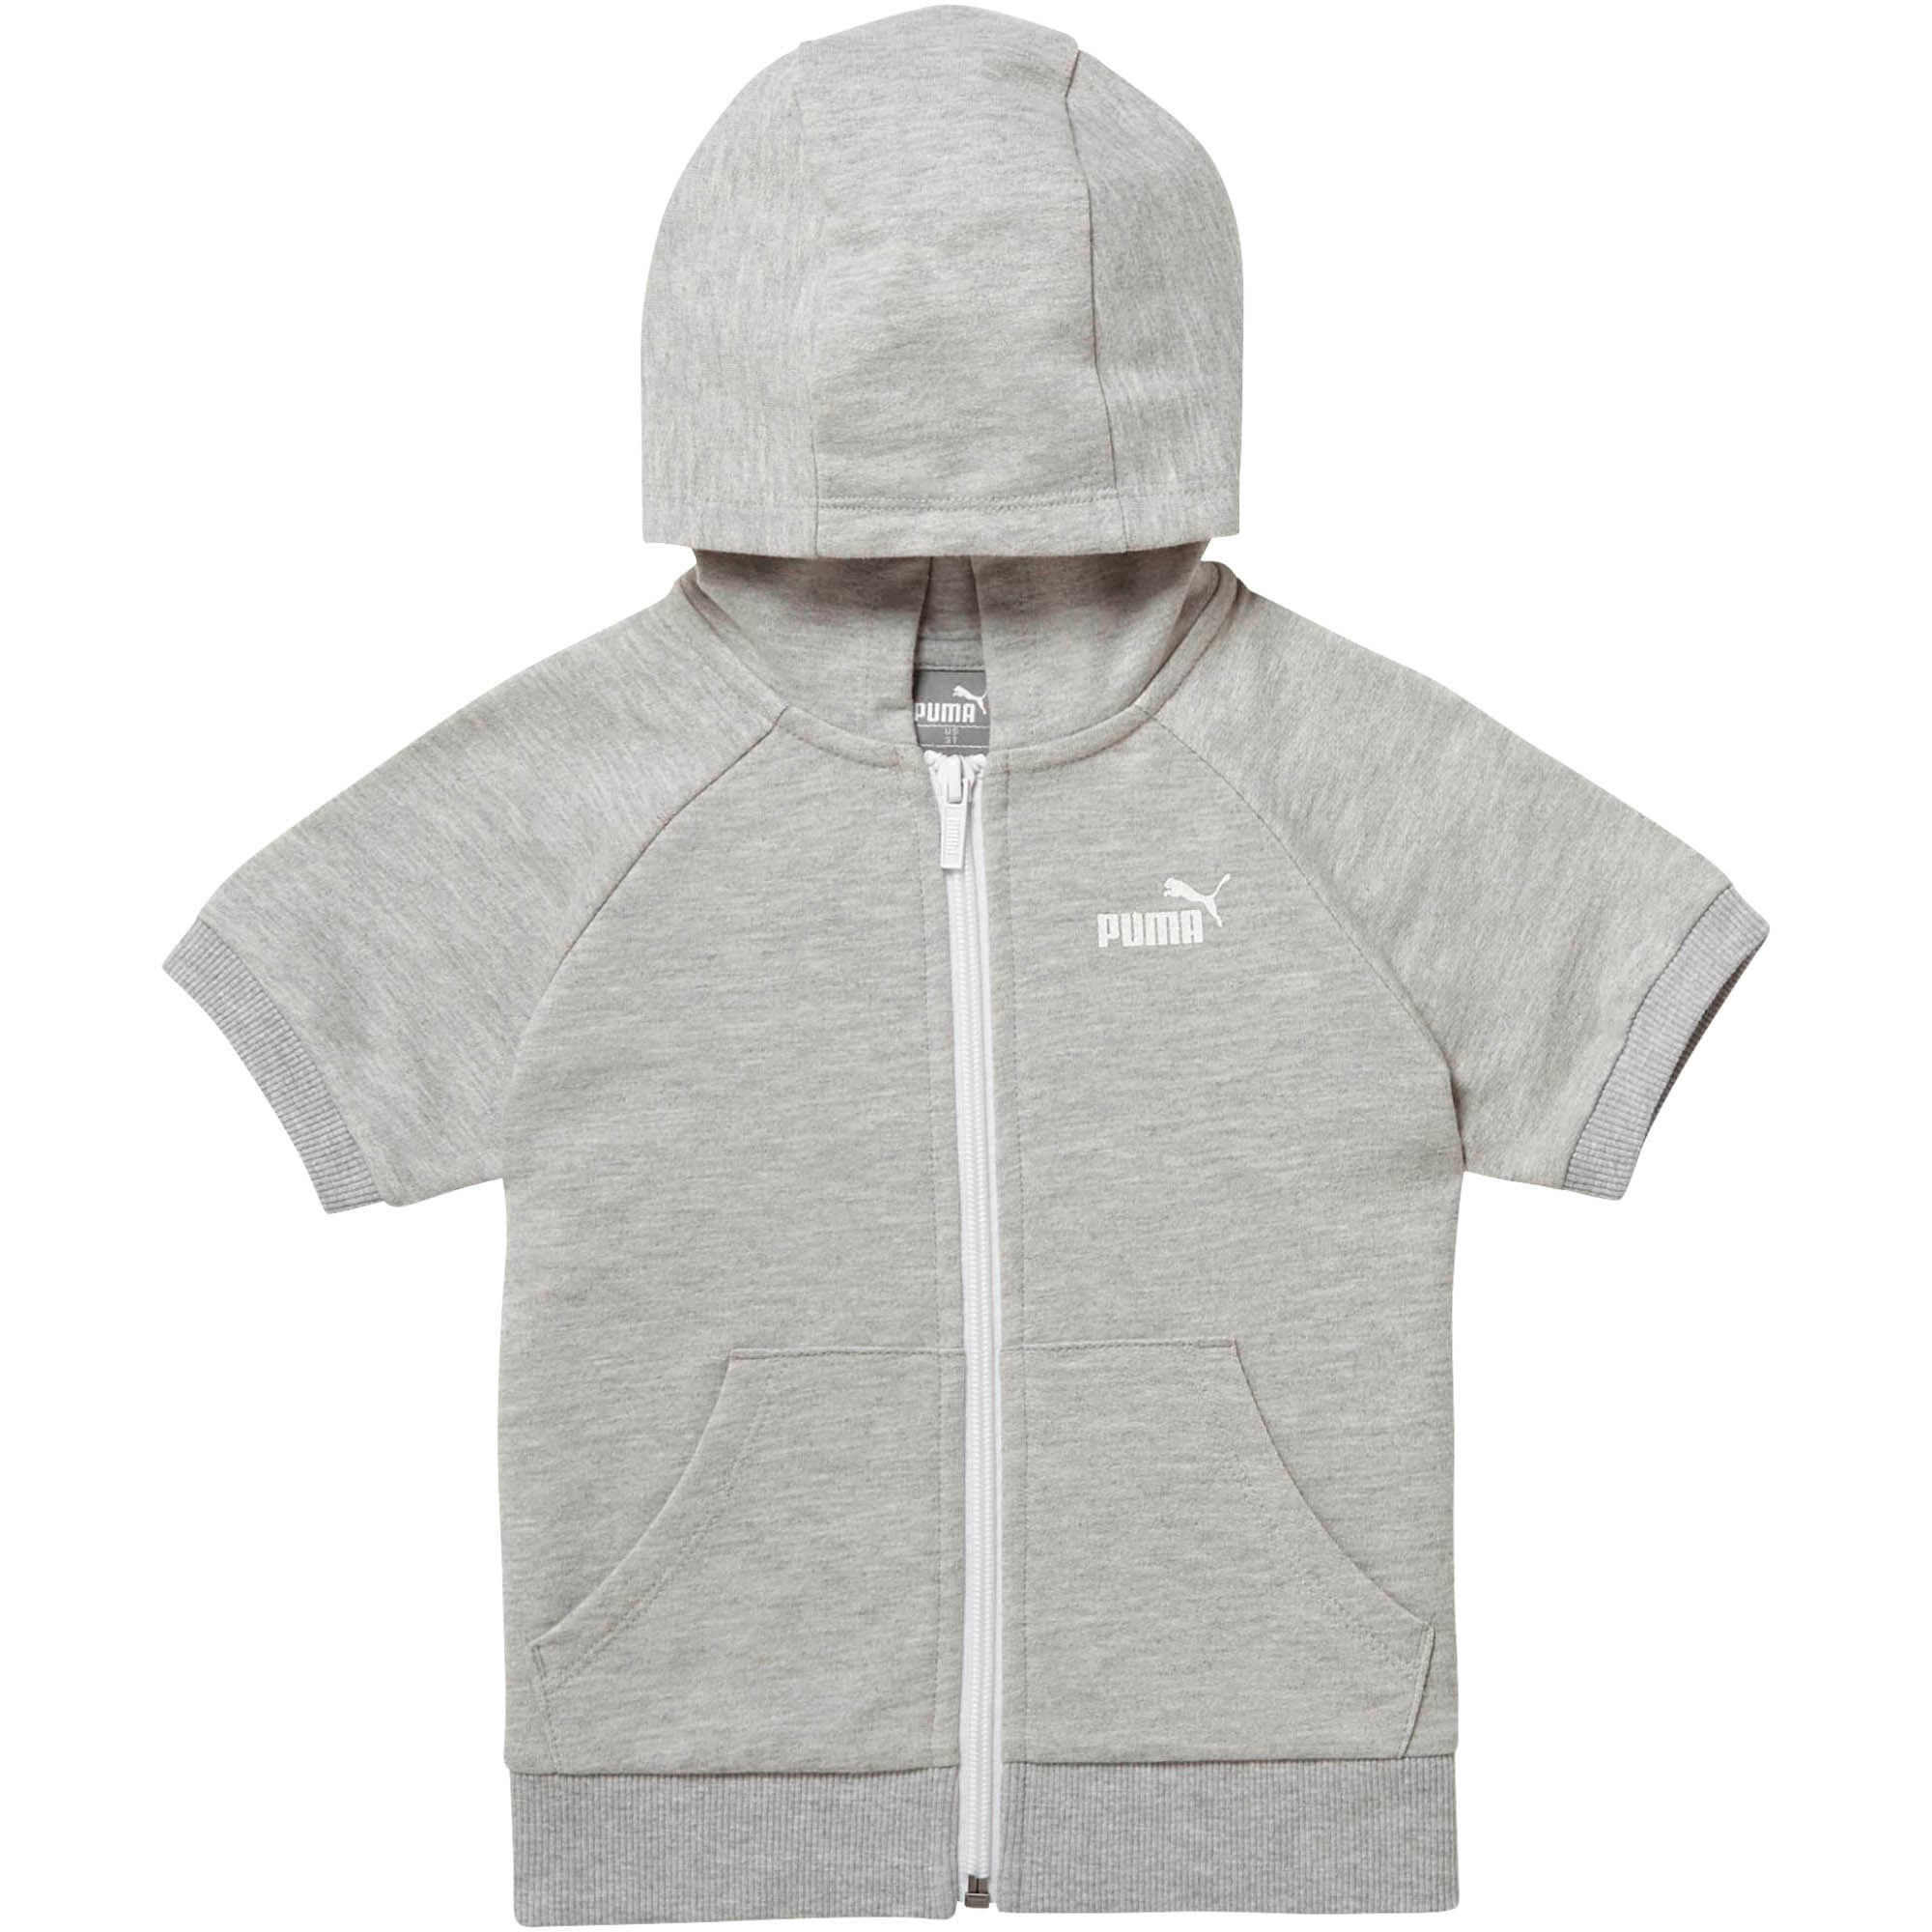 Thumbnail 1 of Toddler Full Zip Short Sleeve Hoodie, LIGHT HEATHER GREY, medium